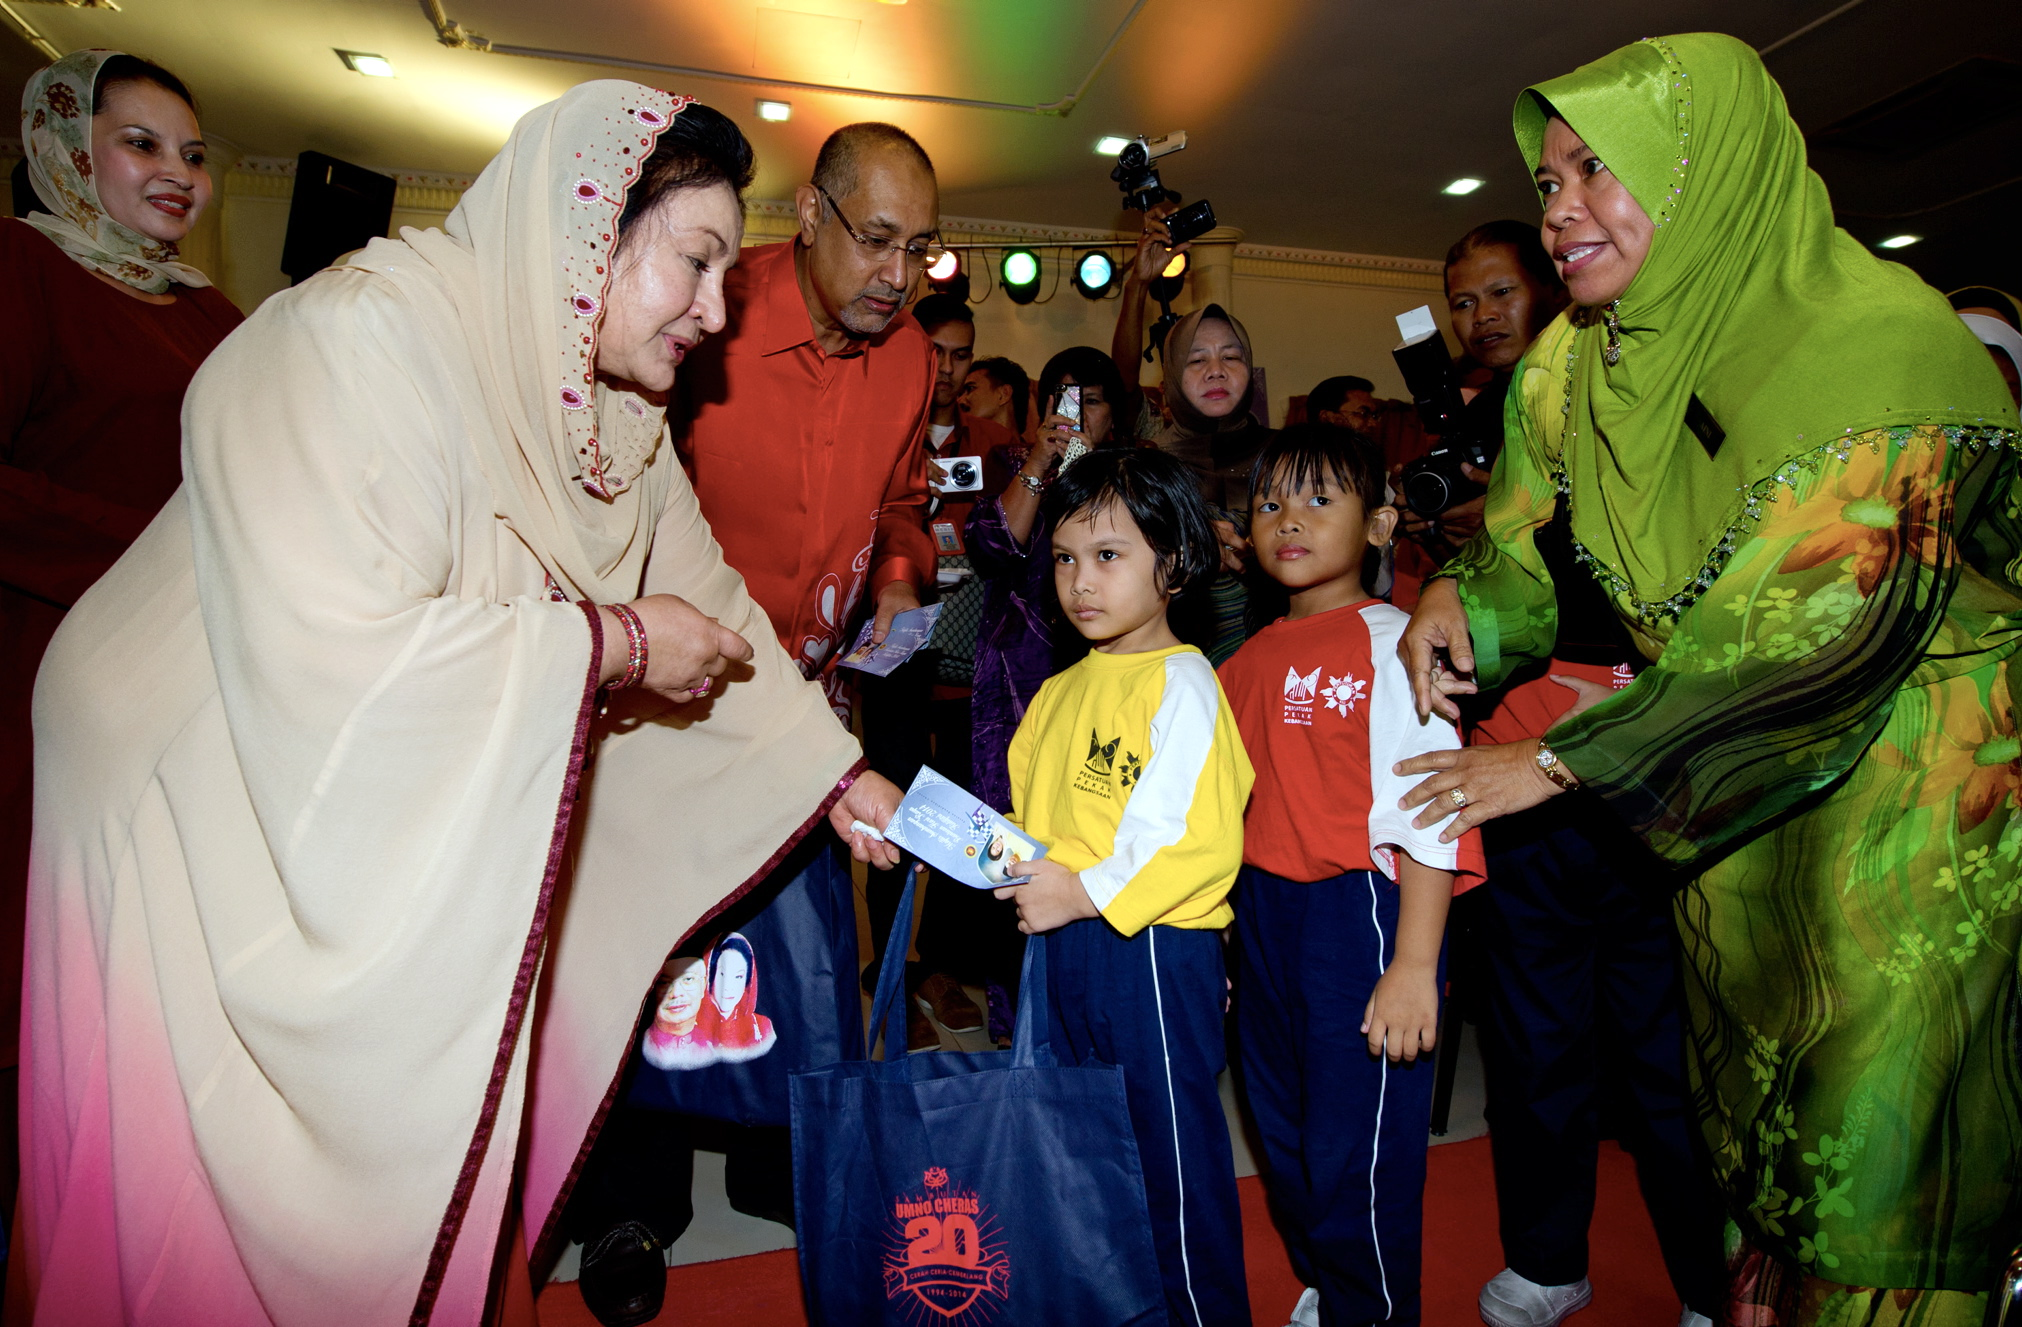 Datin Seri Rosmah Mansor (second from the left), wife of the prime minister, presents cash aid to the less fortunate during a charity event organised by the Cheras Education Foundation in Kuala Lumpur, July 10, 2014. — Bernama pic